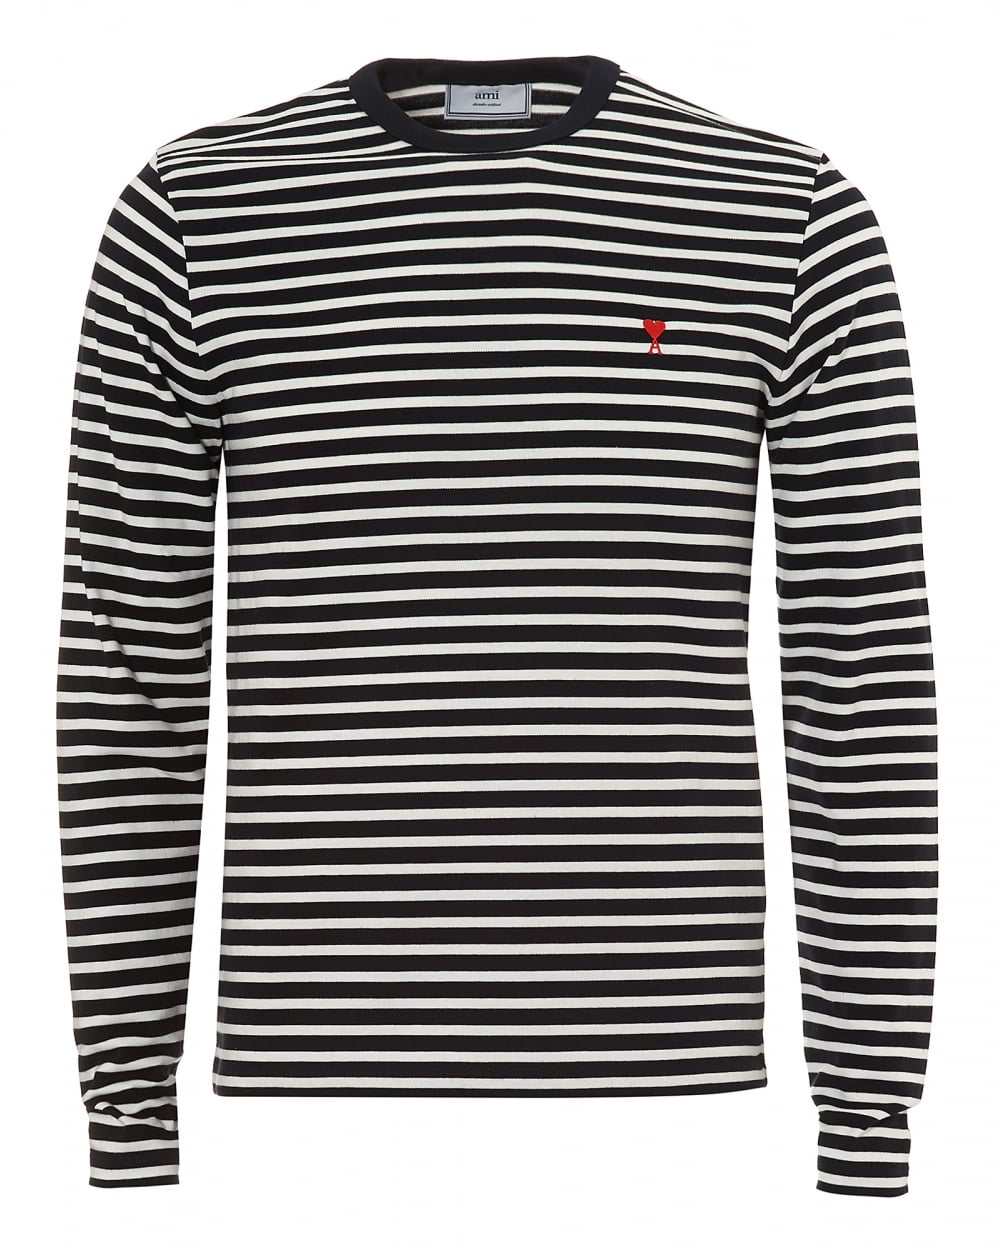 Ami mens navy white striped pattern long sleeve t shirt for Long sleeve shirt pattern